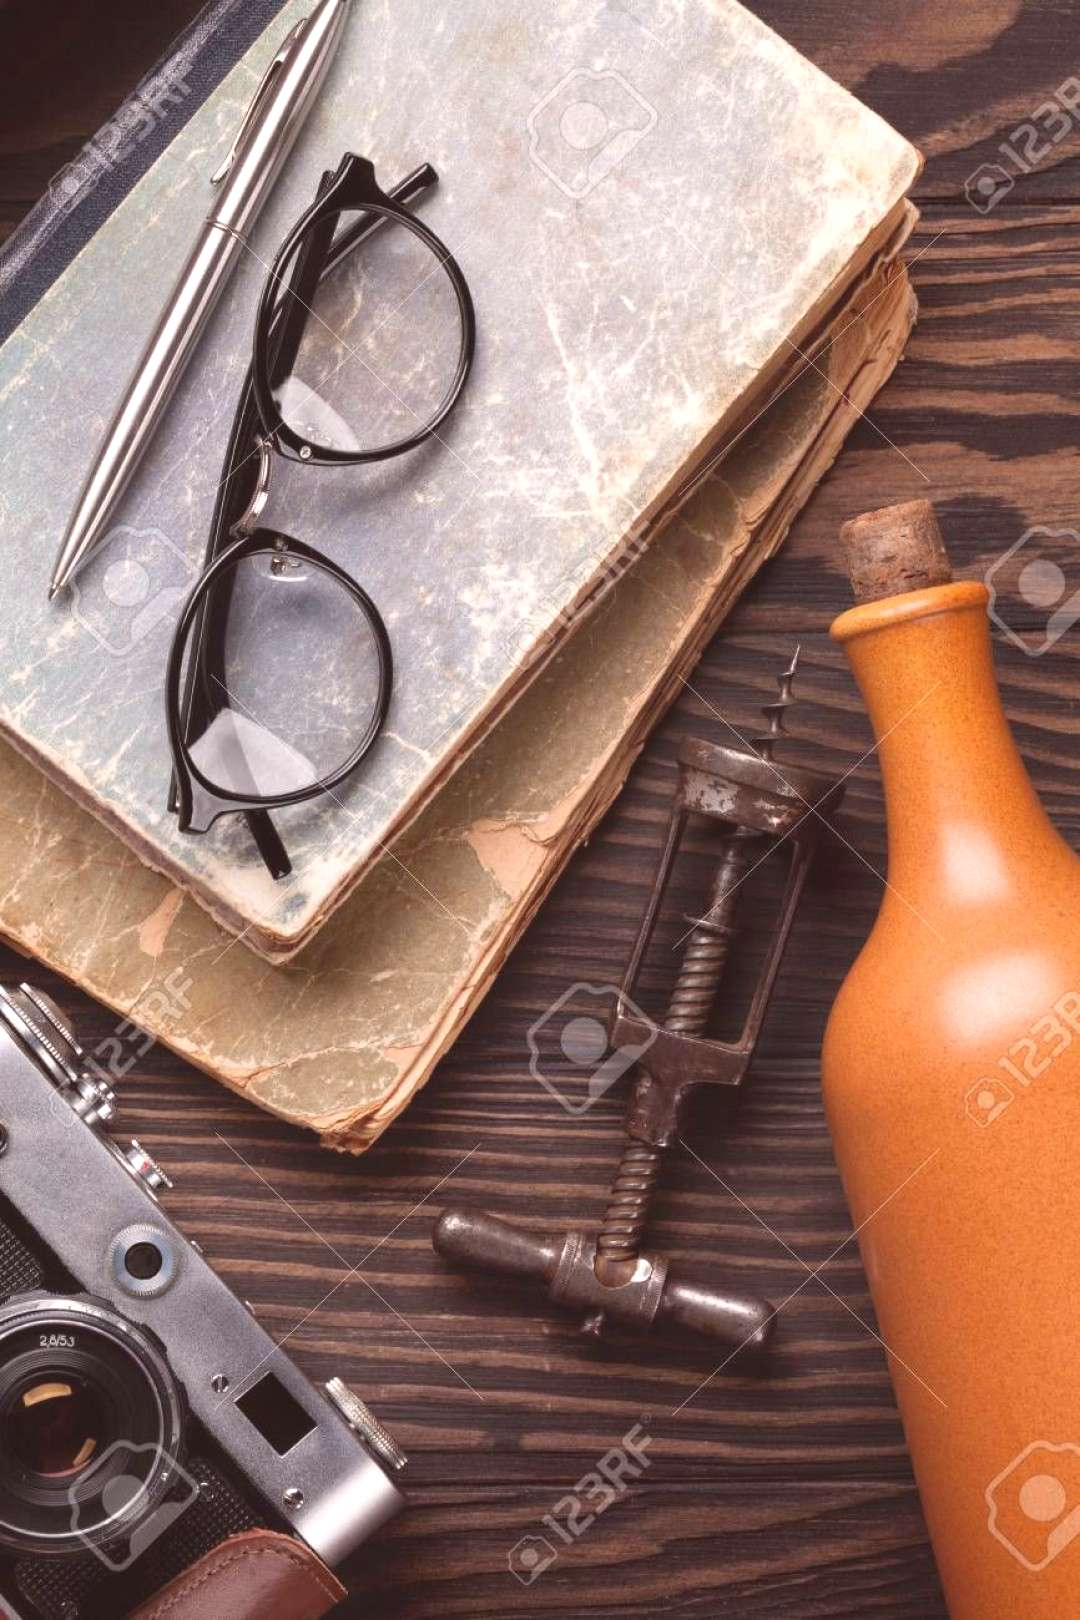 Retro table with vintage items. Camera, books, glasses, wine bottle. Top view Stock Photo ,